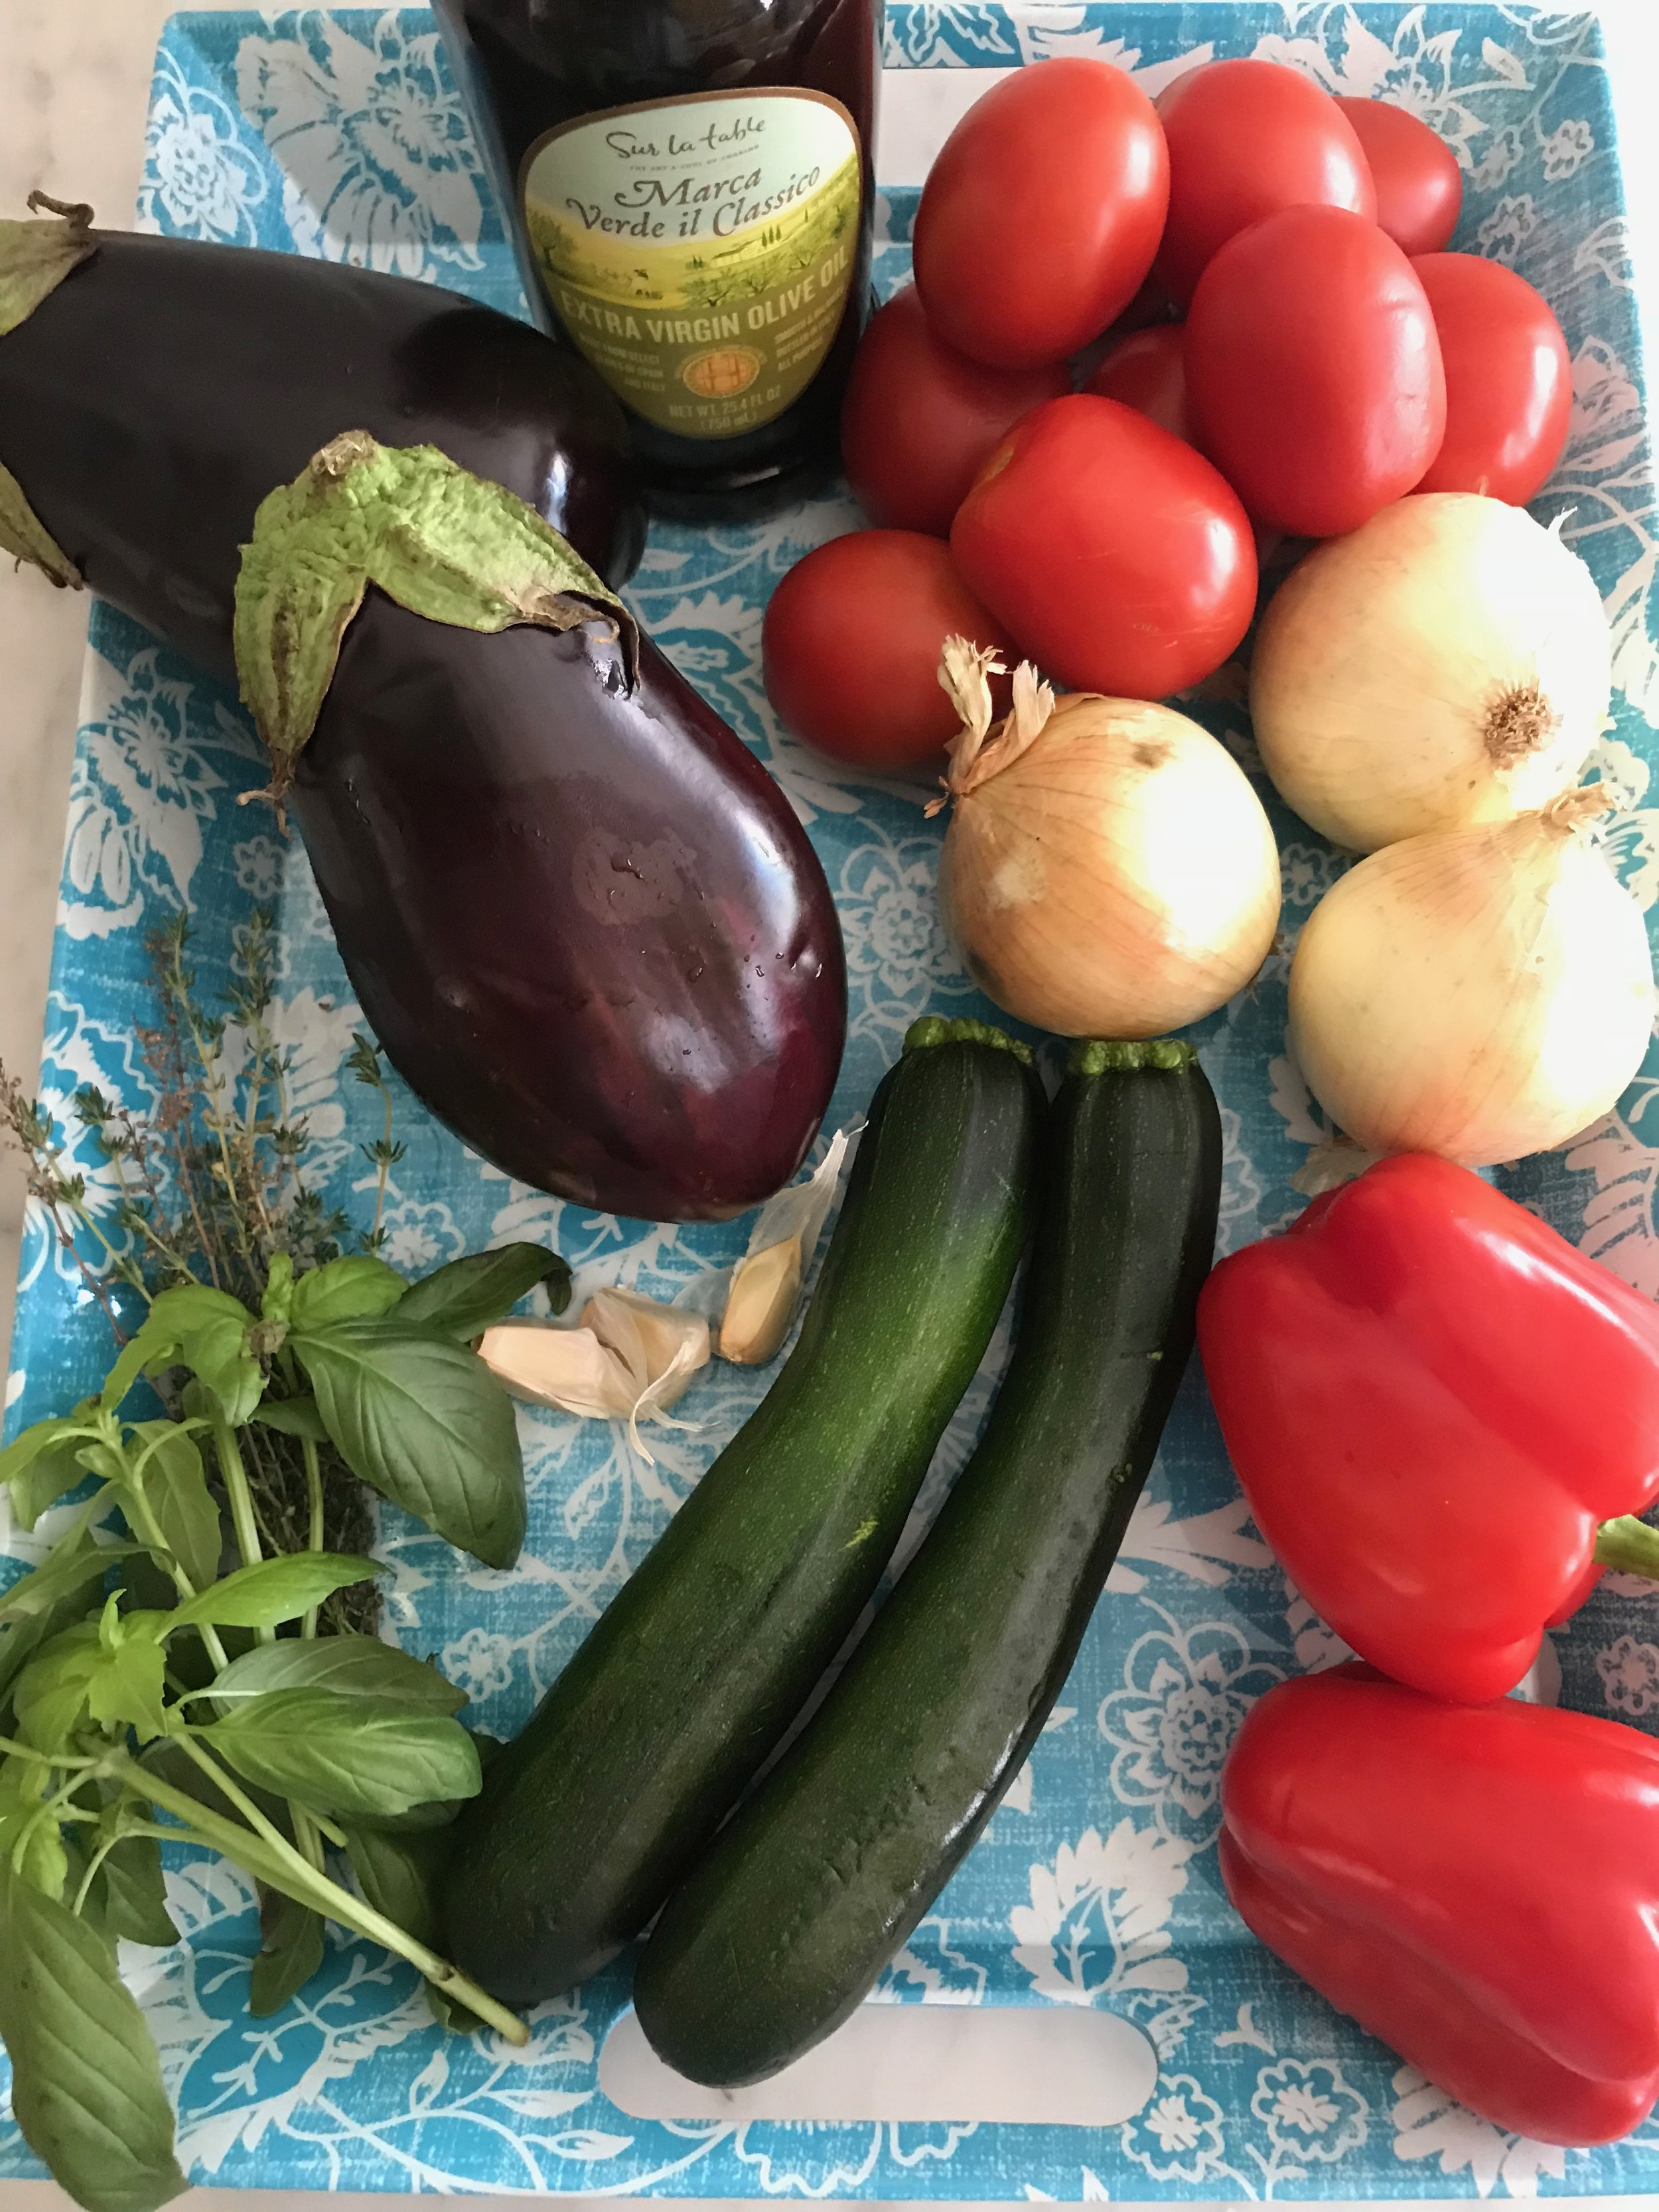 Ingredients - ¼ cup olive oil3 onions2 medium Italian or globe eggplants2 red peppers4 medium zucchini2 pounds Roma tomatoes, (or one 14oz can diced tomatoes)3 cloves garlic, crushed2T fresh thymeSalt & pepper2T fresh basil, chiffonade